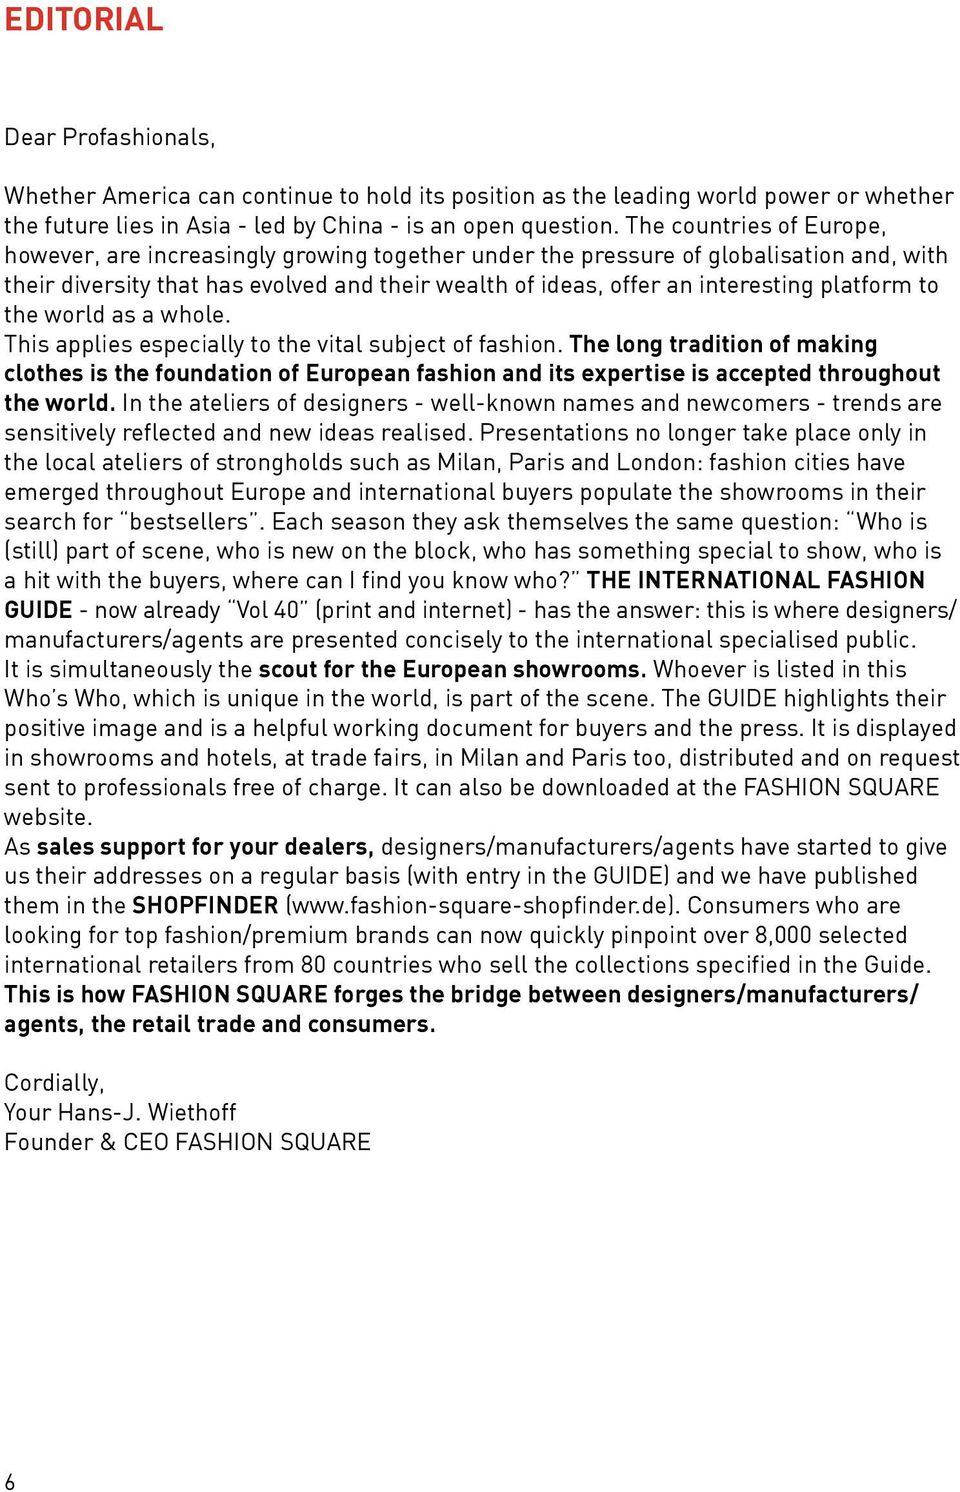 platform to the world as a whole. This applies especially to the vital subject of fashion.